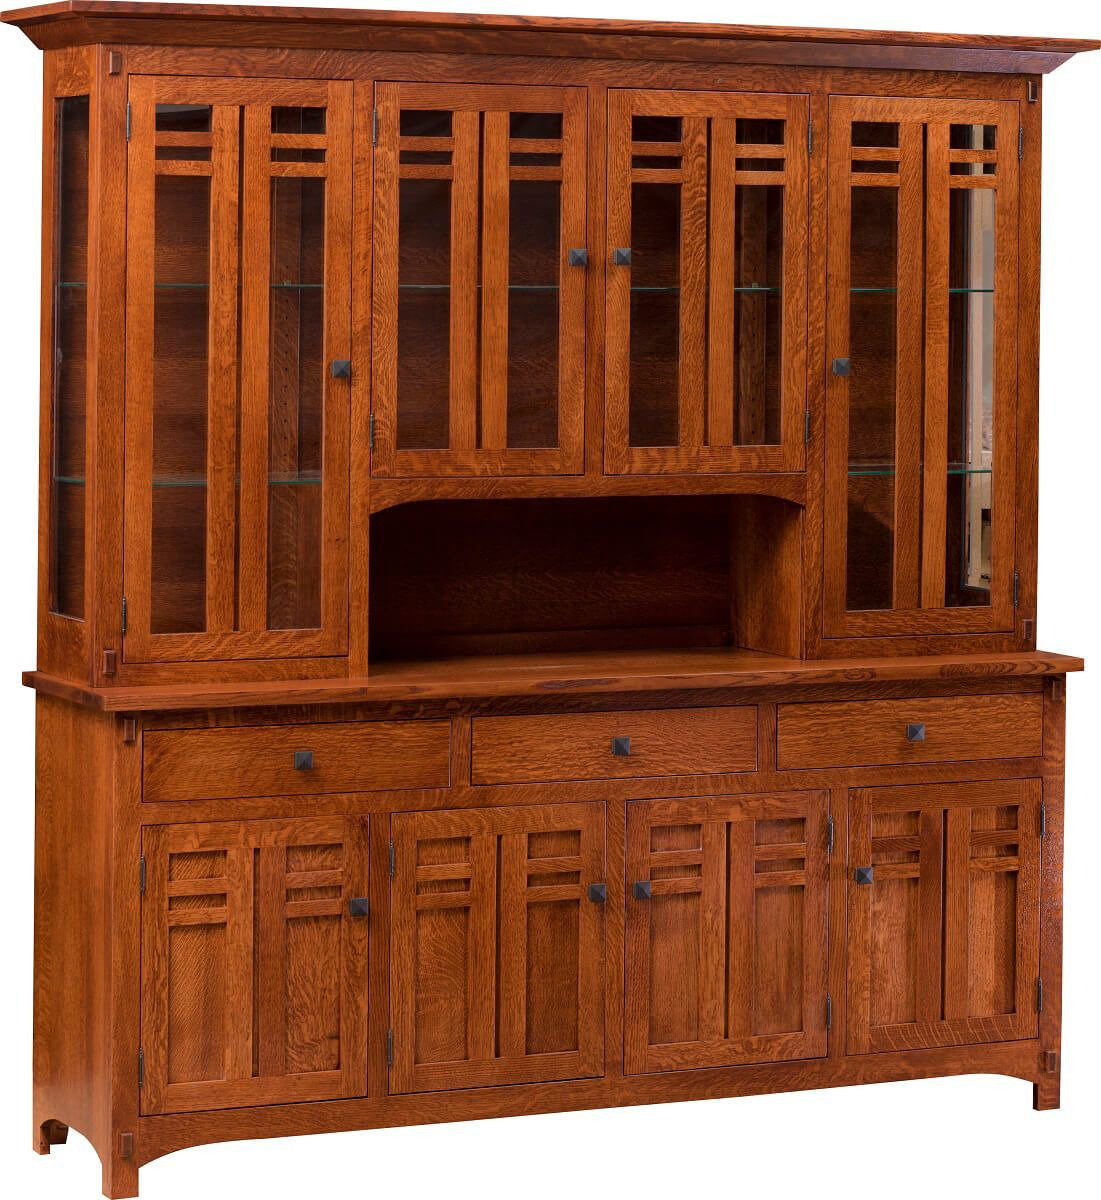 Parsons Ferry 4 Door China Hutch Countryside Amish Furniture